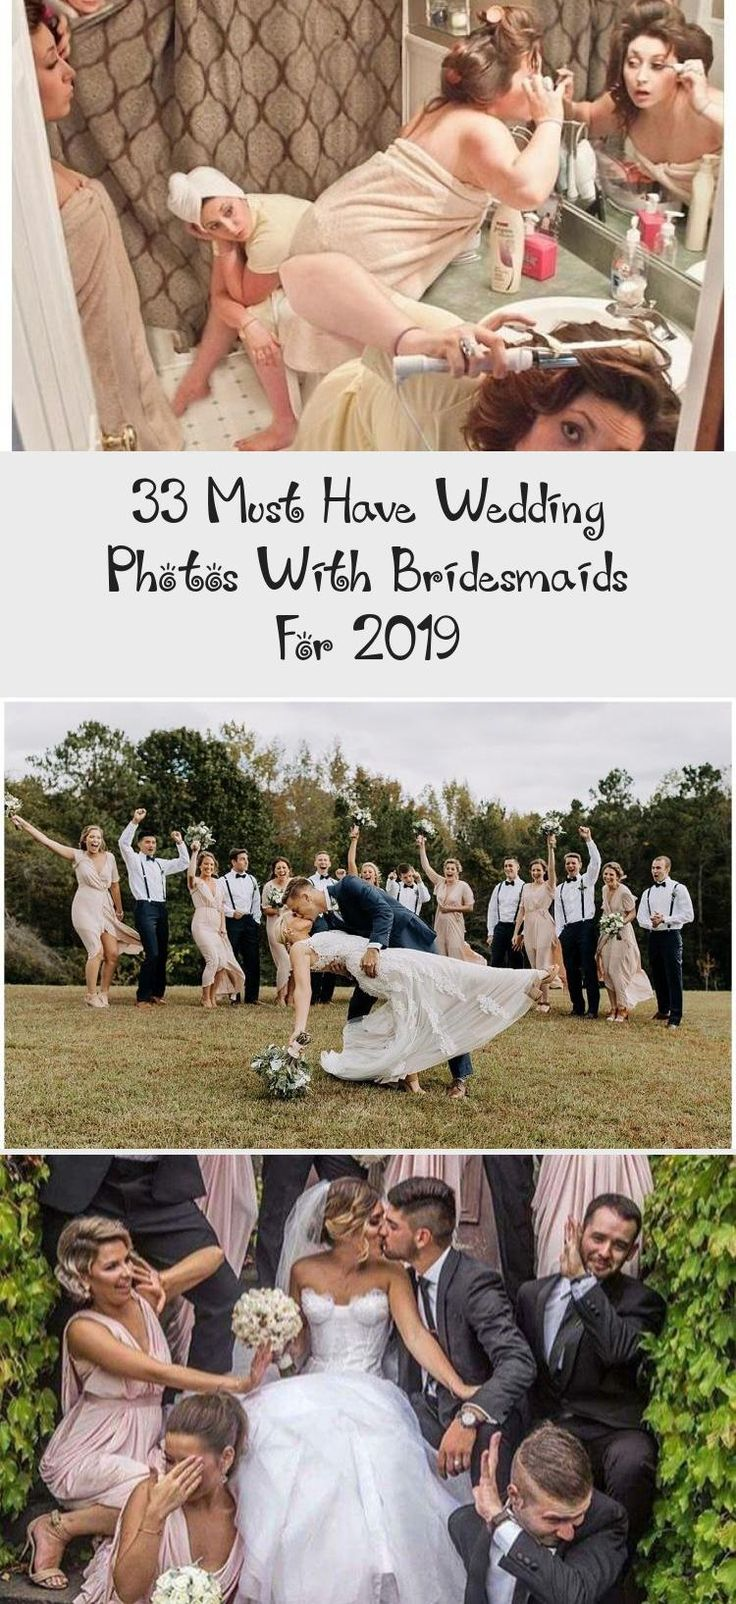 33 Must Have Wedding Photos with Bridesmaids for 2019 #VelvetBridesmaidDresses #JuniorBridesmaidDresses #UniqueBridesmaidDresses #CheapBridesmaidDresses #BridesmaidDressesLace